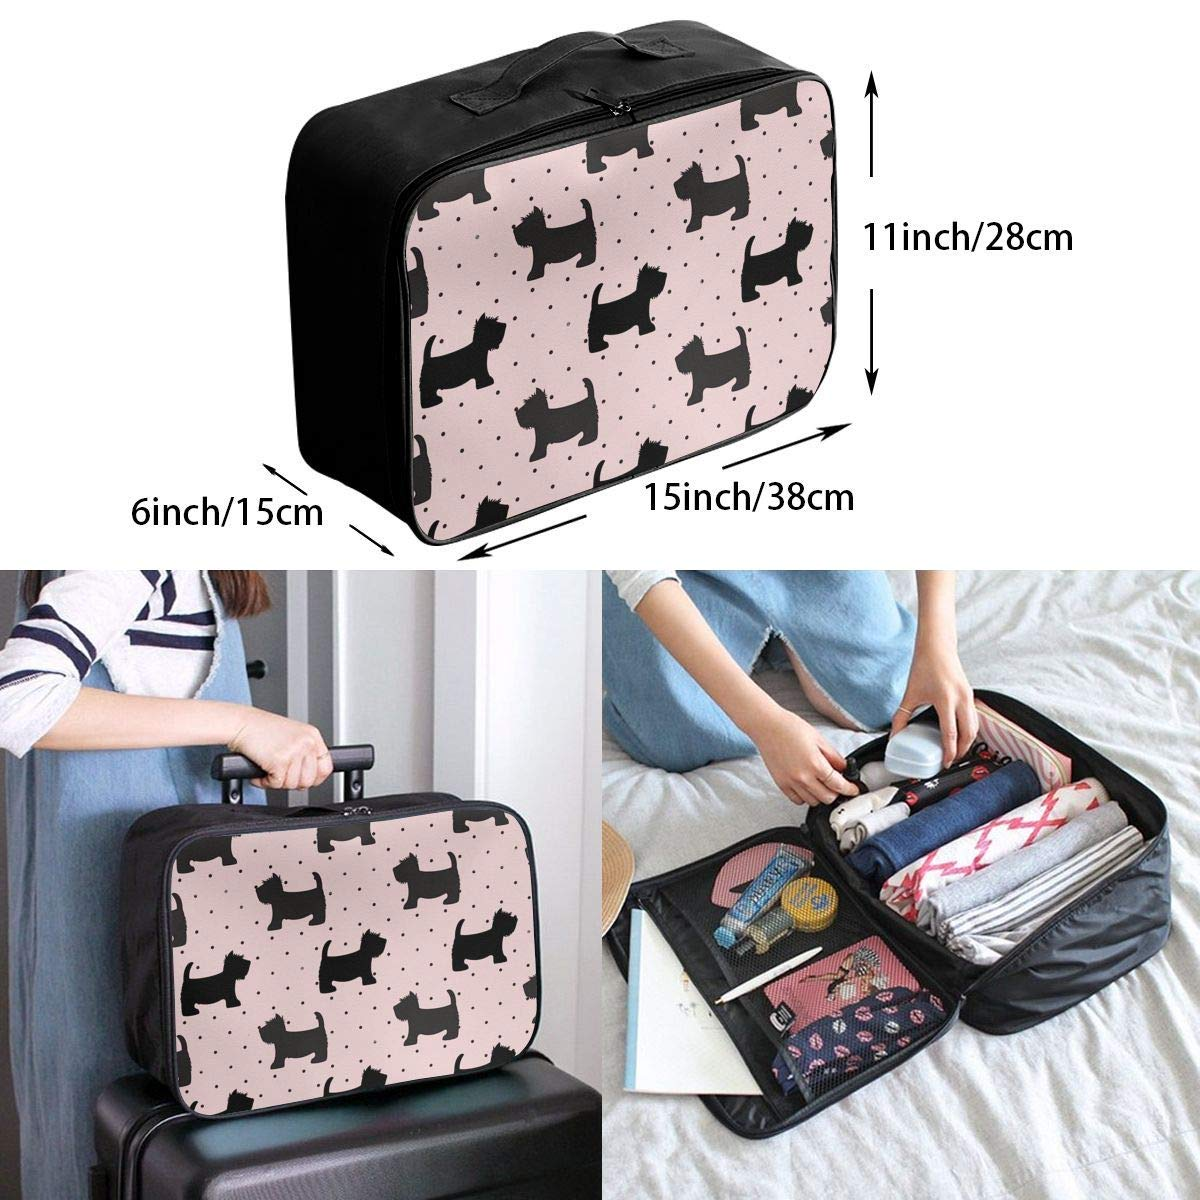 JTRVW Luggage Bags for Travel Portable Luggage Duffel Bag Covered with Snow Cat Travel Bags Carry-on in Trolley Handle